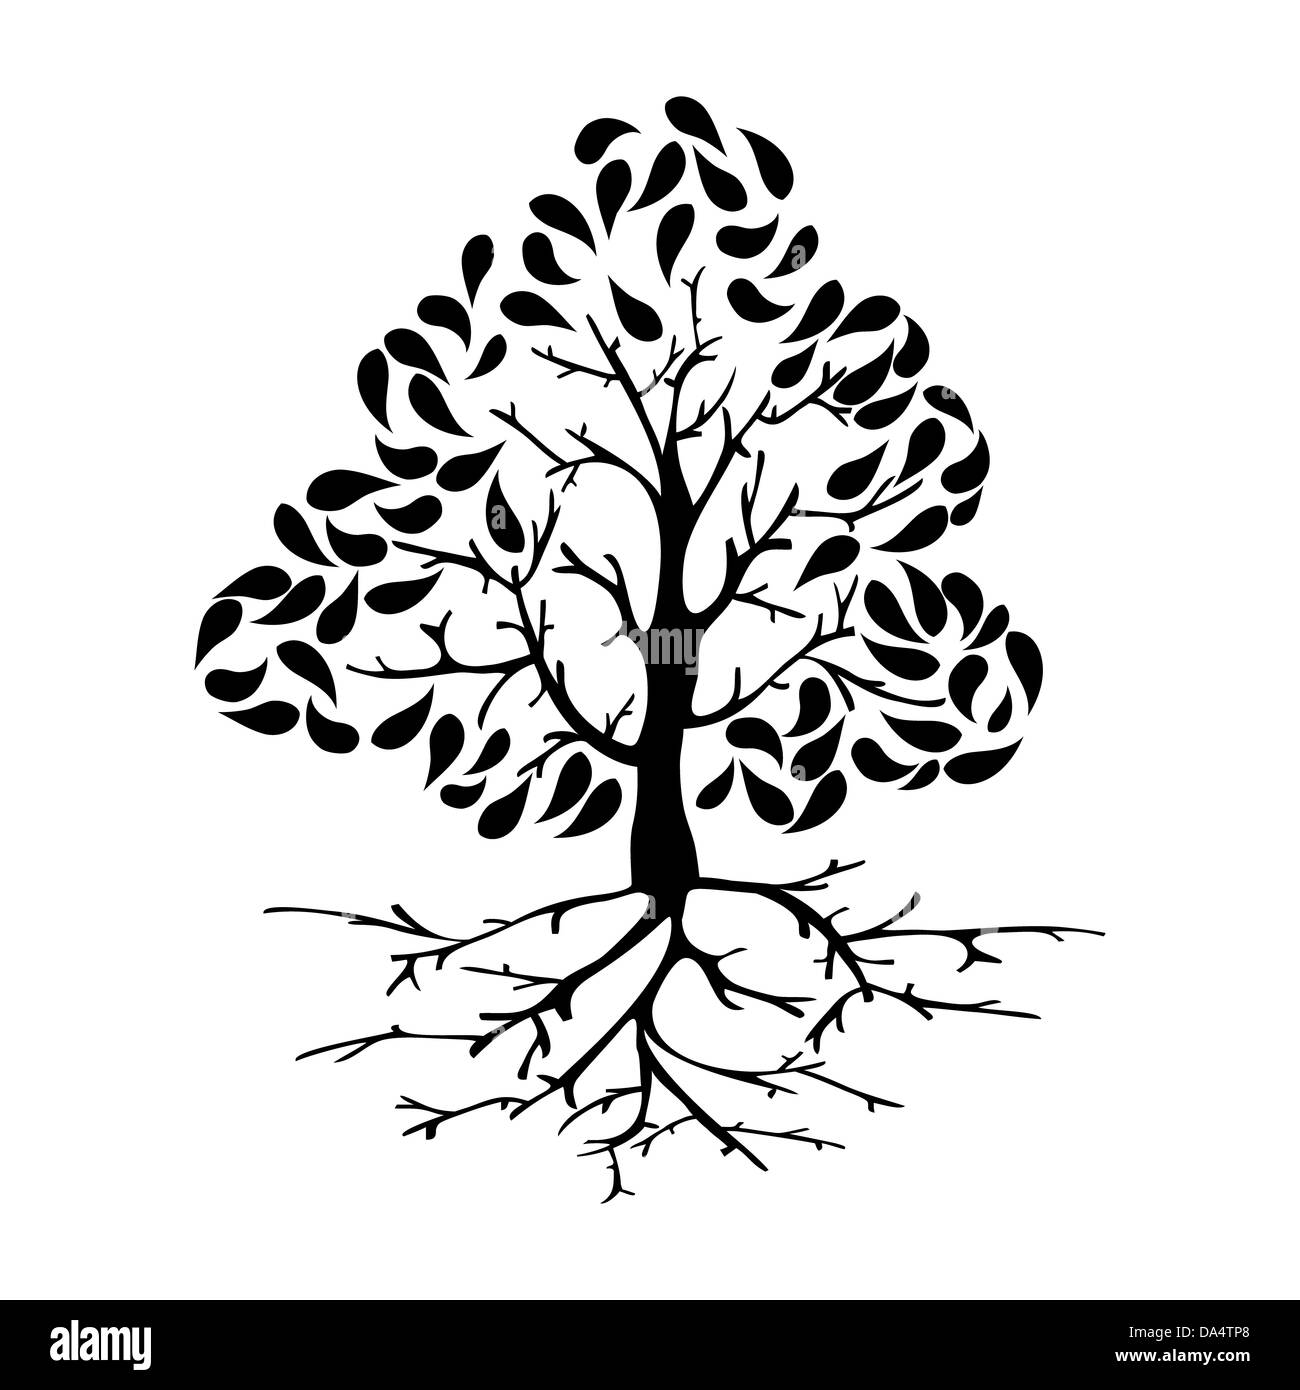 Black tree silhouette illustration with roots. Vector file layered ...